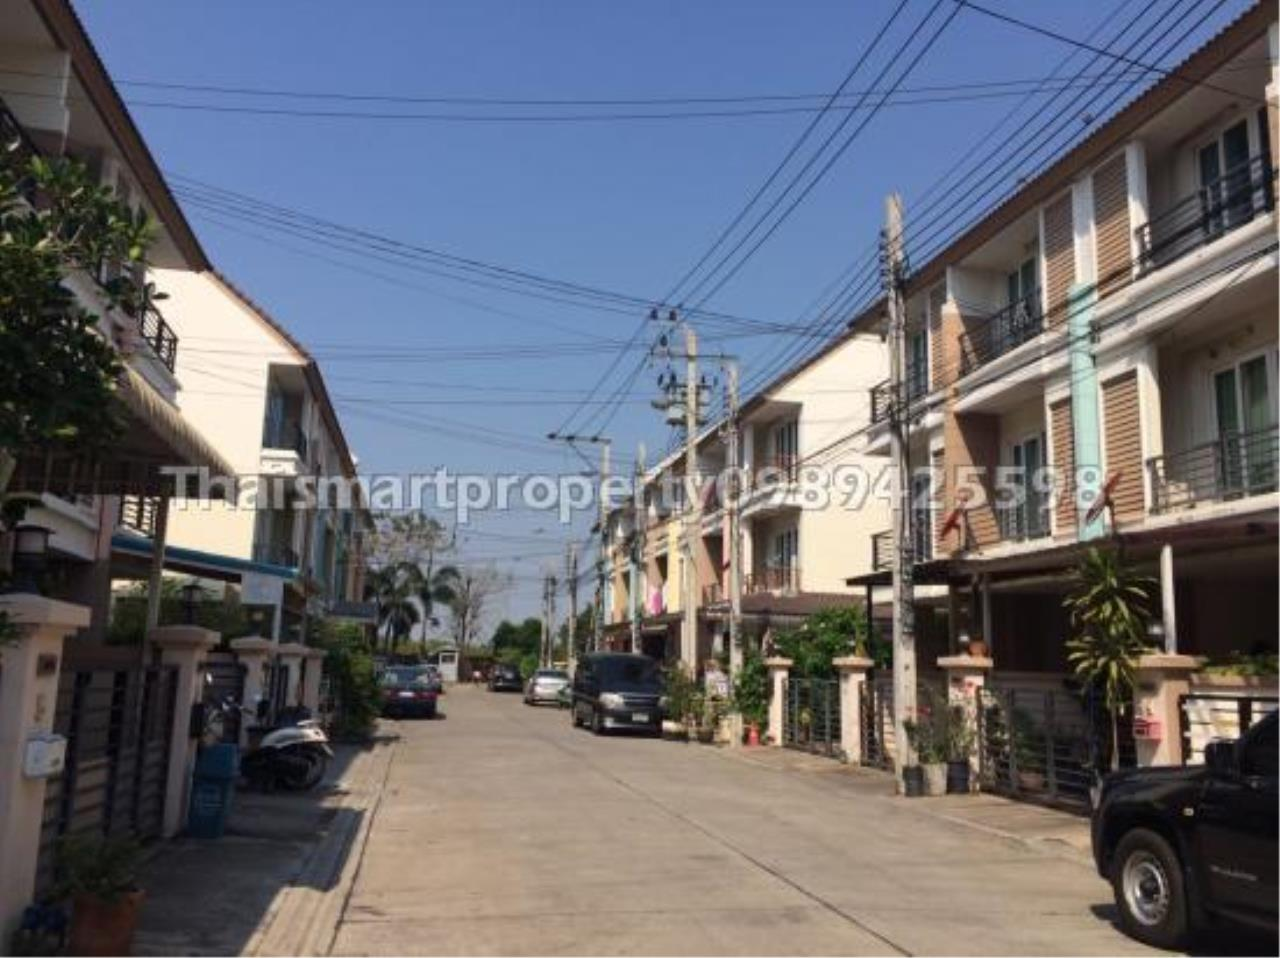 Thai Smart Property Agency's 3 storey townhome for sale, Casa City Sukontasawat 2 11